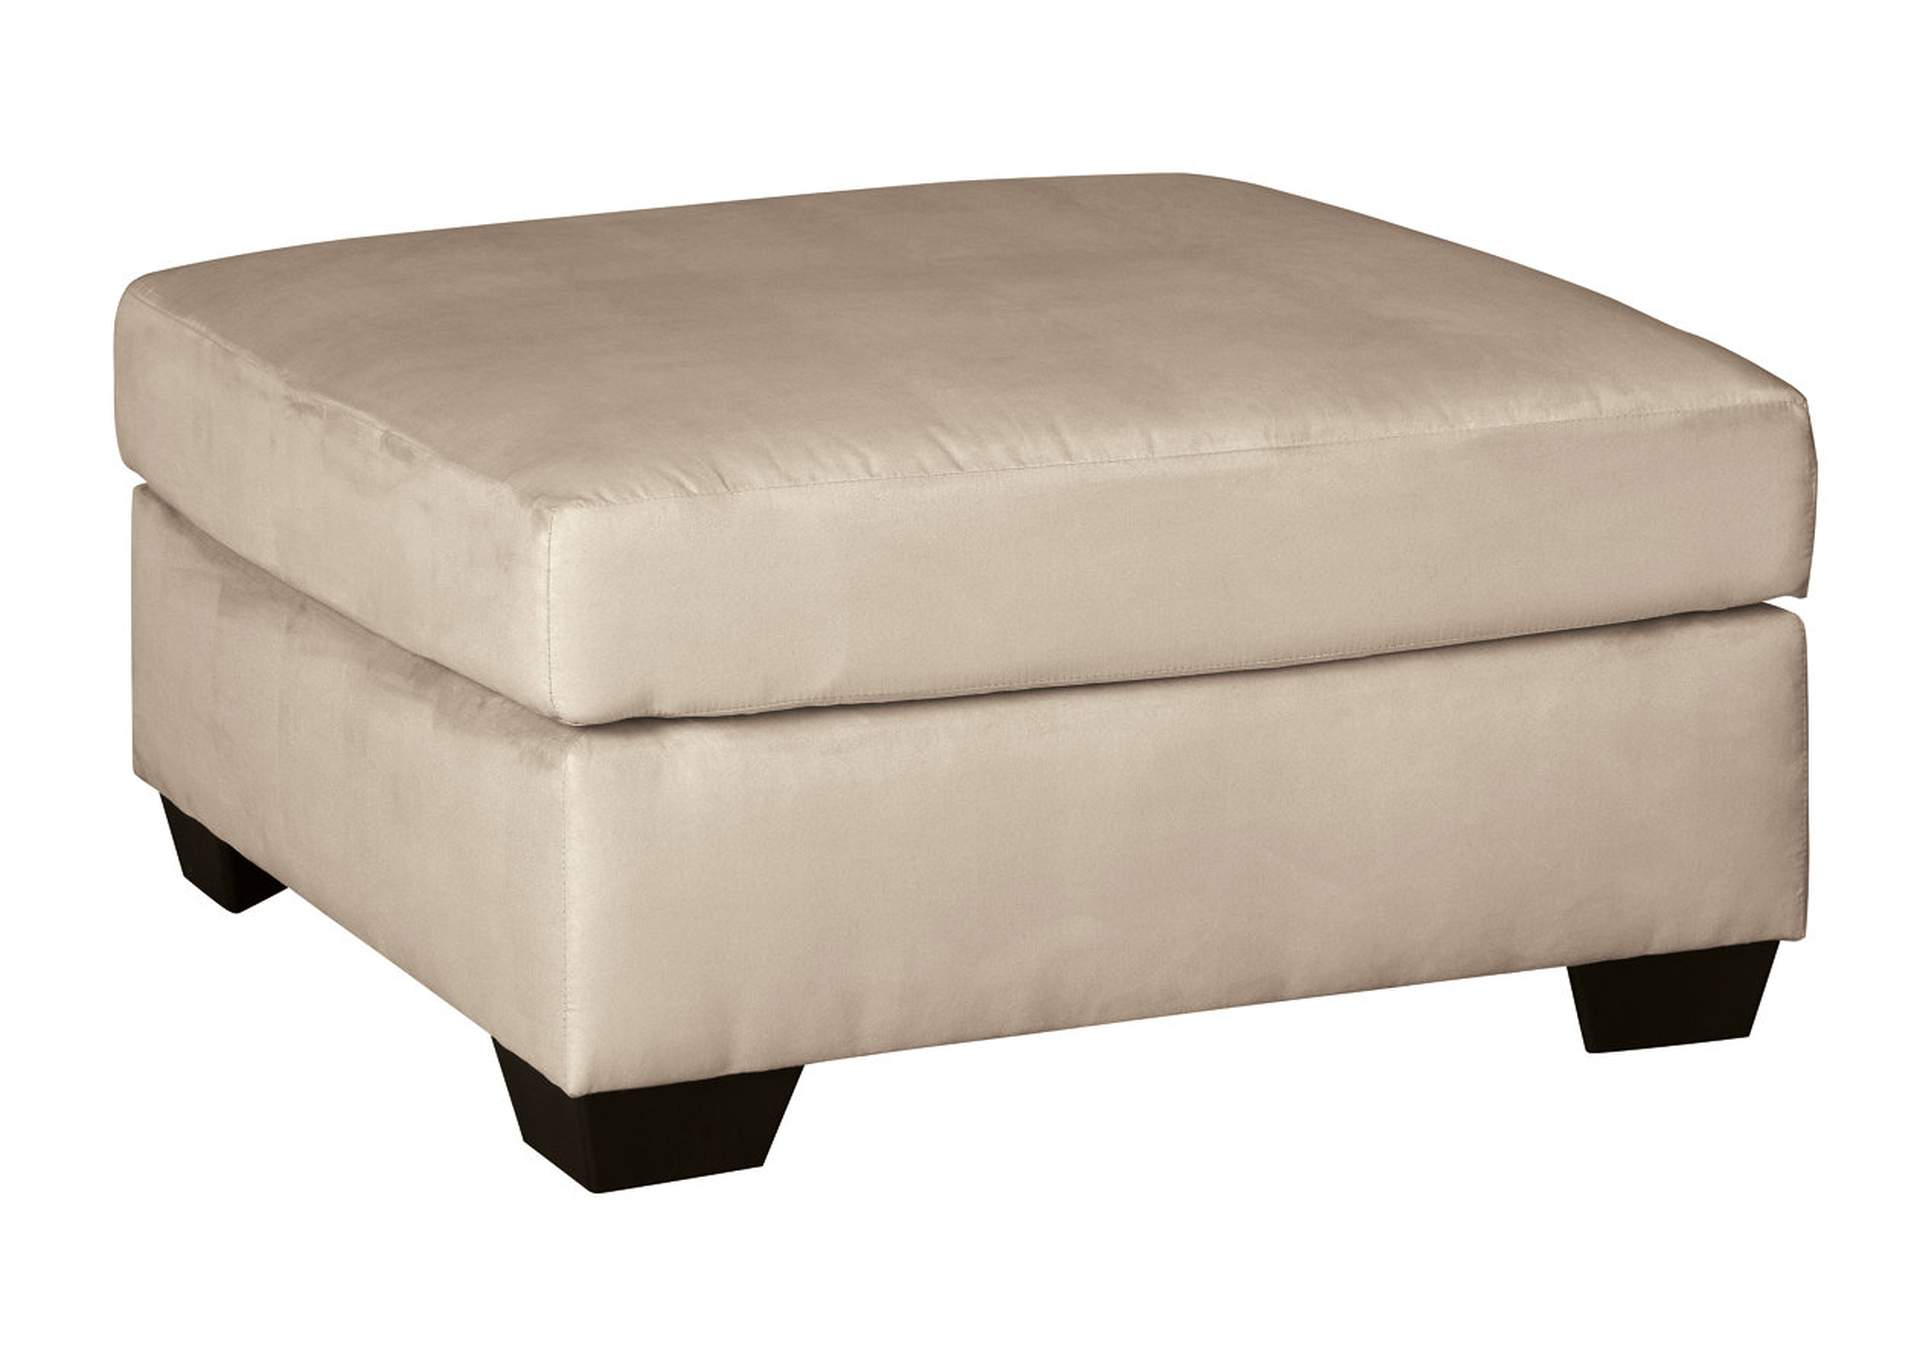 Darcy Stone Oversized Accent Ottoman,Signature Design By Ashley